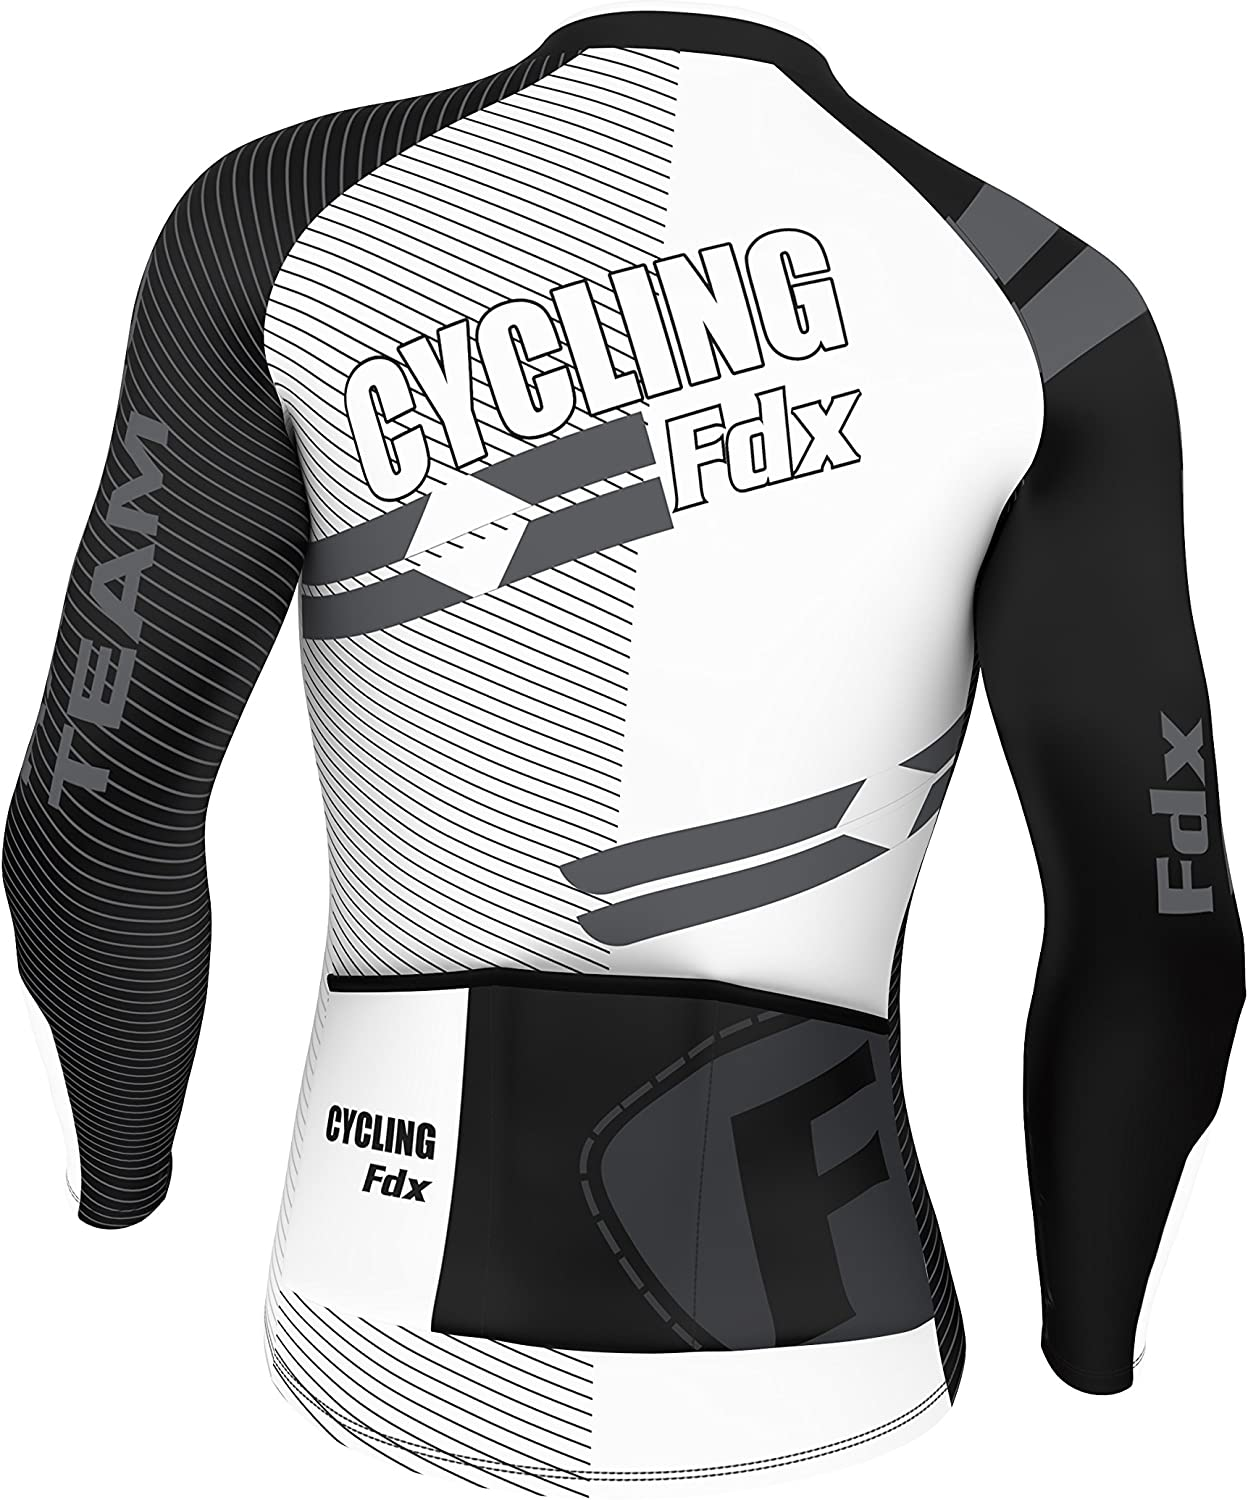 Asvert Mens Cycling Clothing Set Spring Autumn Breathable Quick-dry Sportswear Suit Men and Women Cycling Jersey Road Mountain Bike Riding Outdoor Full Zip Long Sleeve Tops and Pants,Neutral M-3XL